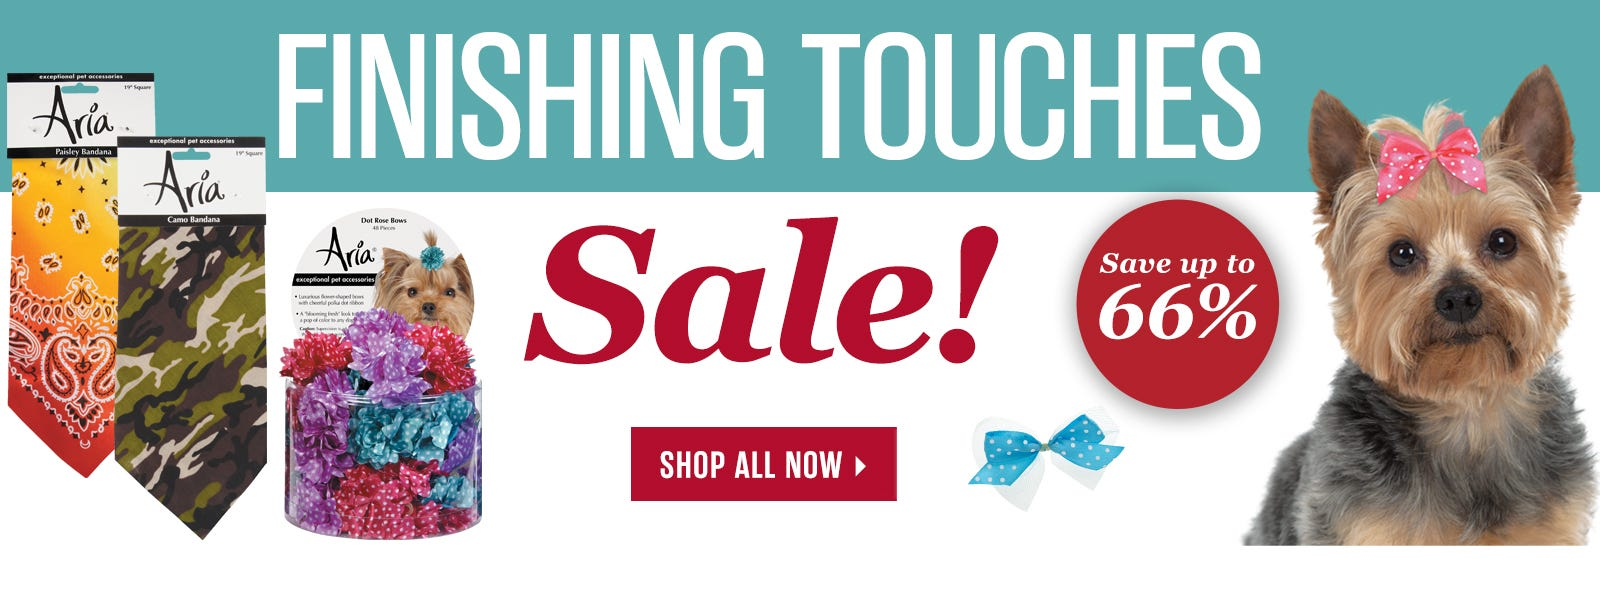 Finishing Touches Sale